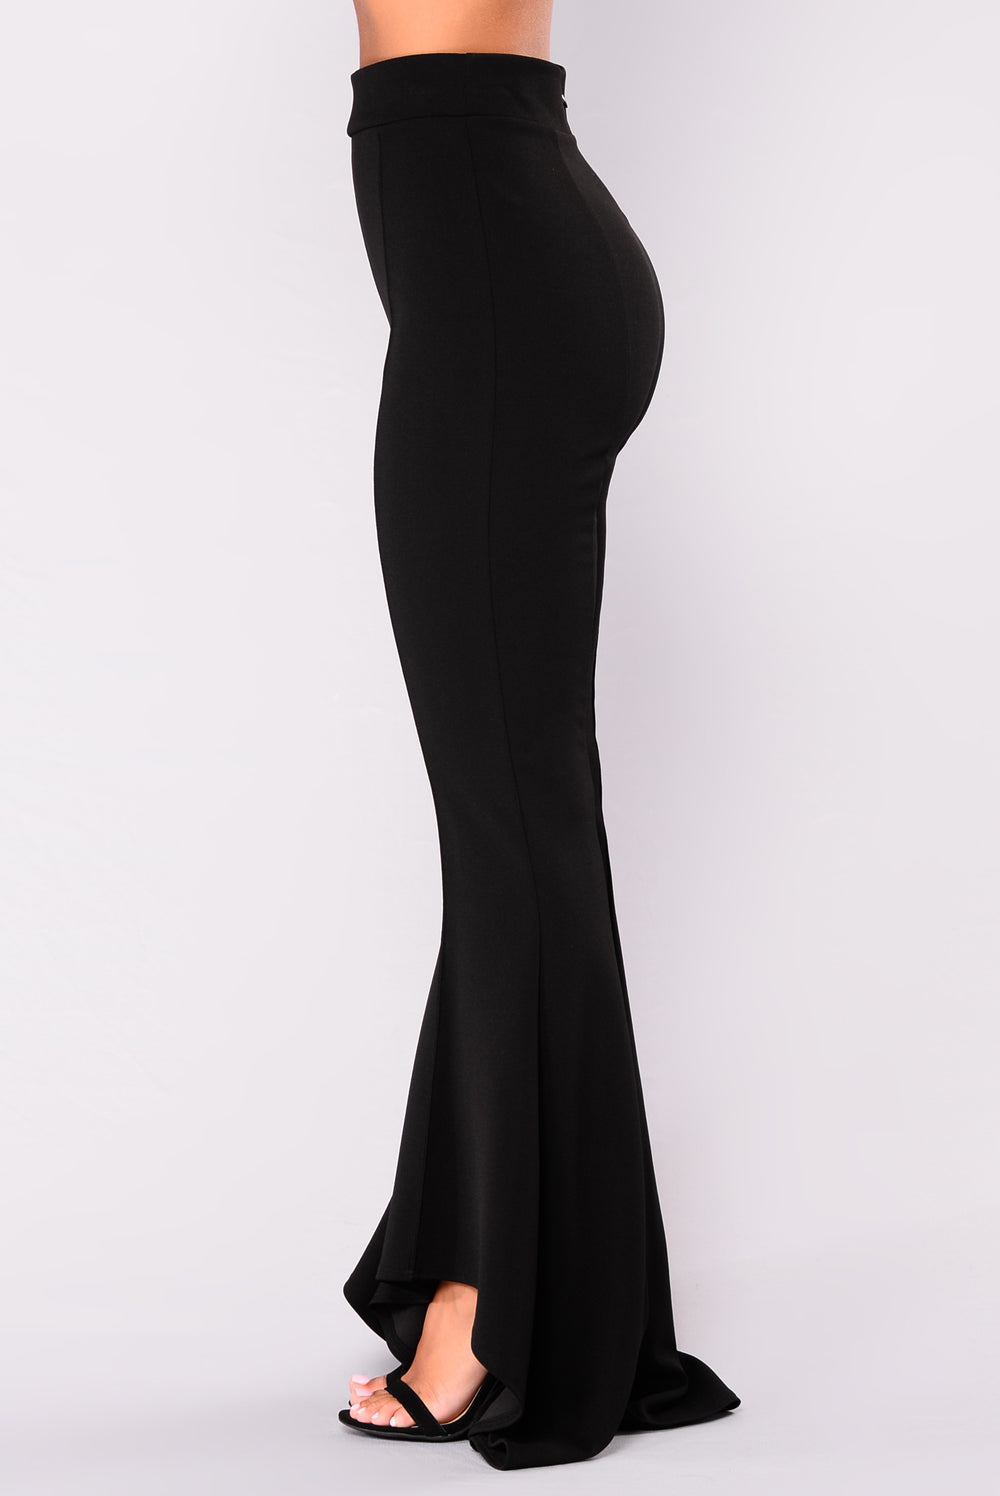 Alaia Dress Pants - Black